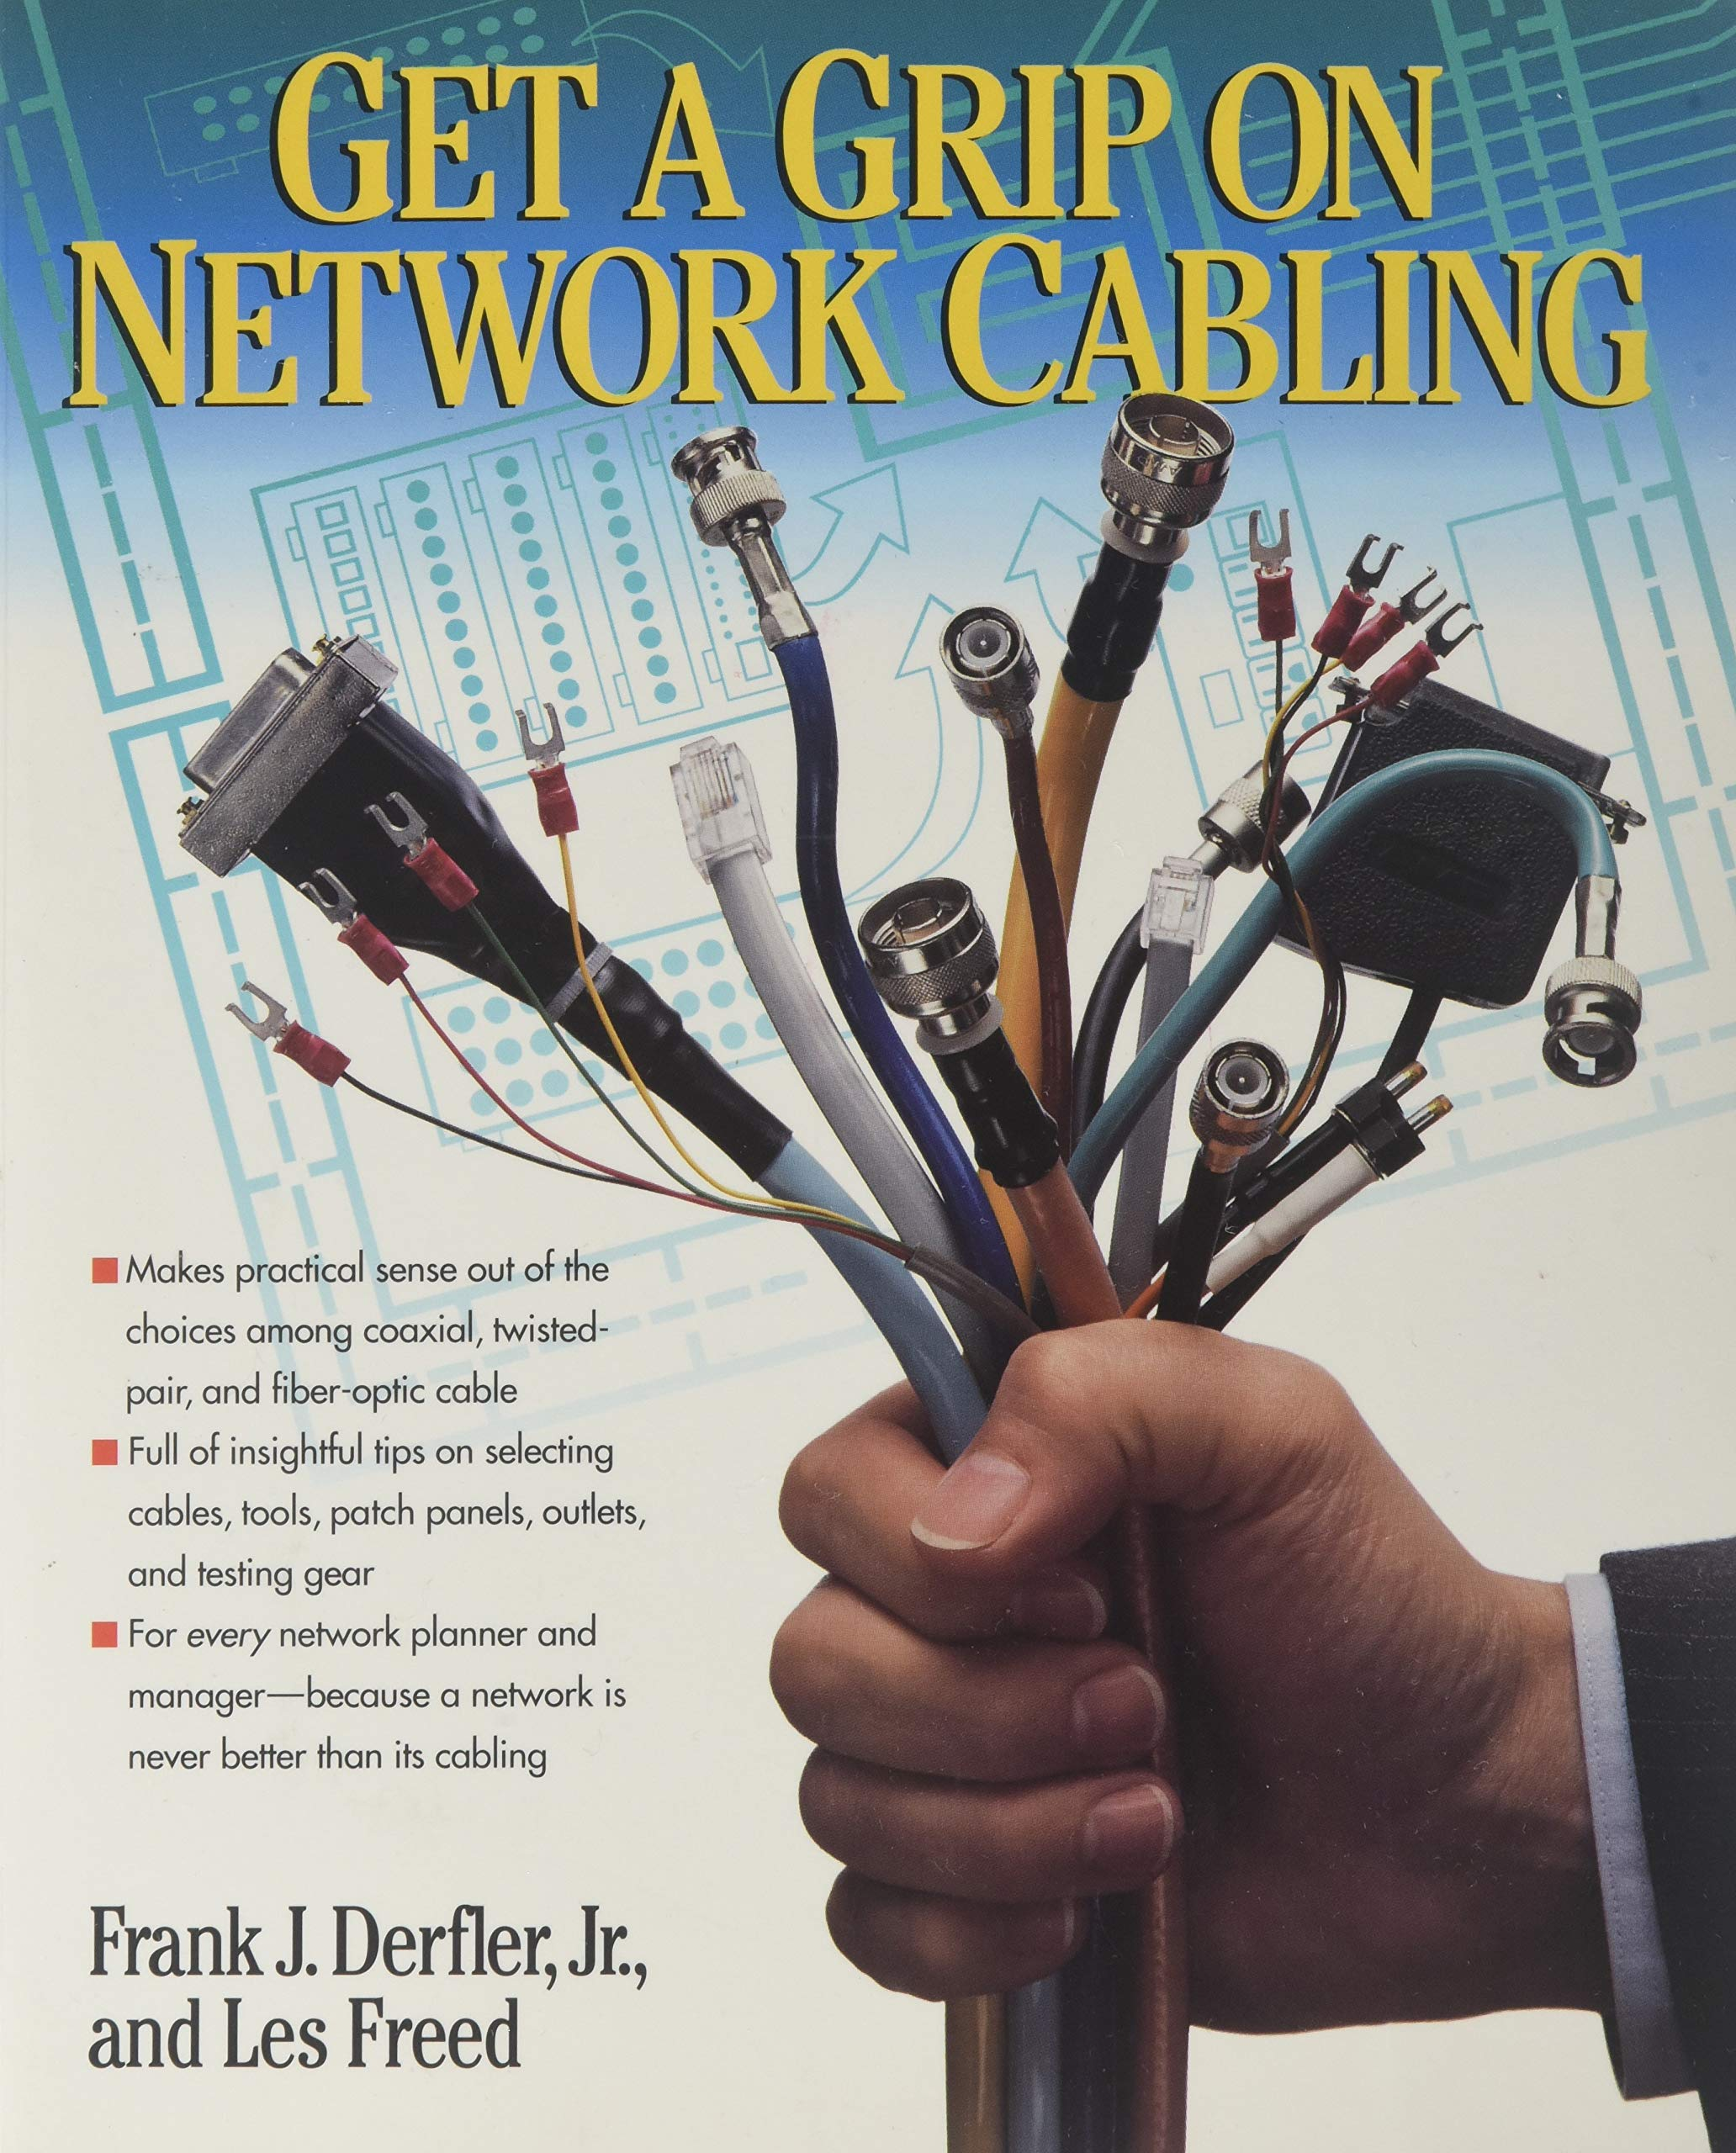 Get a Grip on Network Cabling: Amazon.es: Frank J. Derfler, Les Freed: Libros en idiomas extranjeros